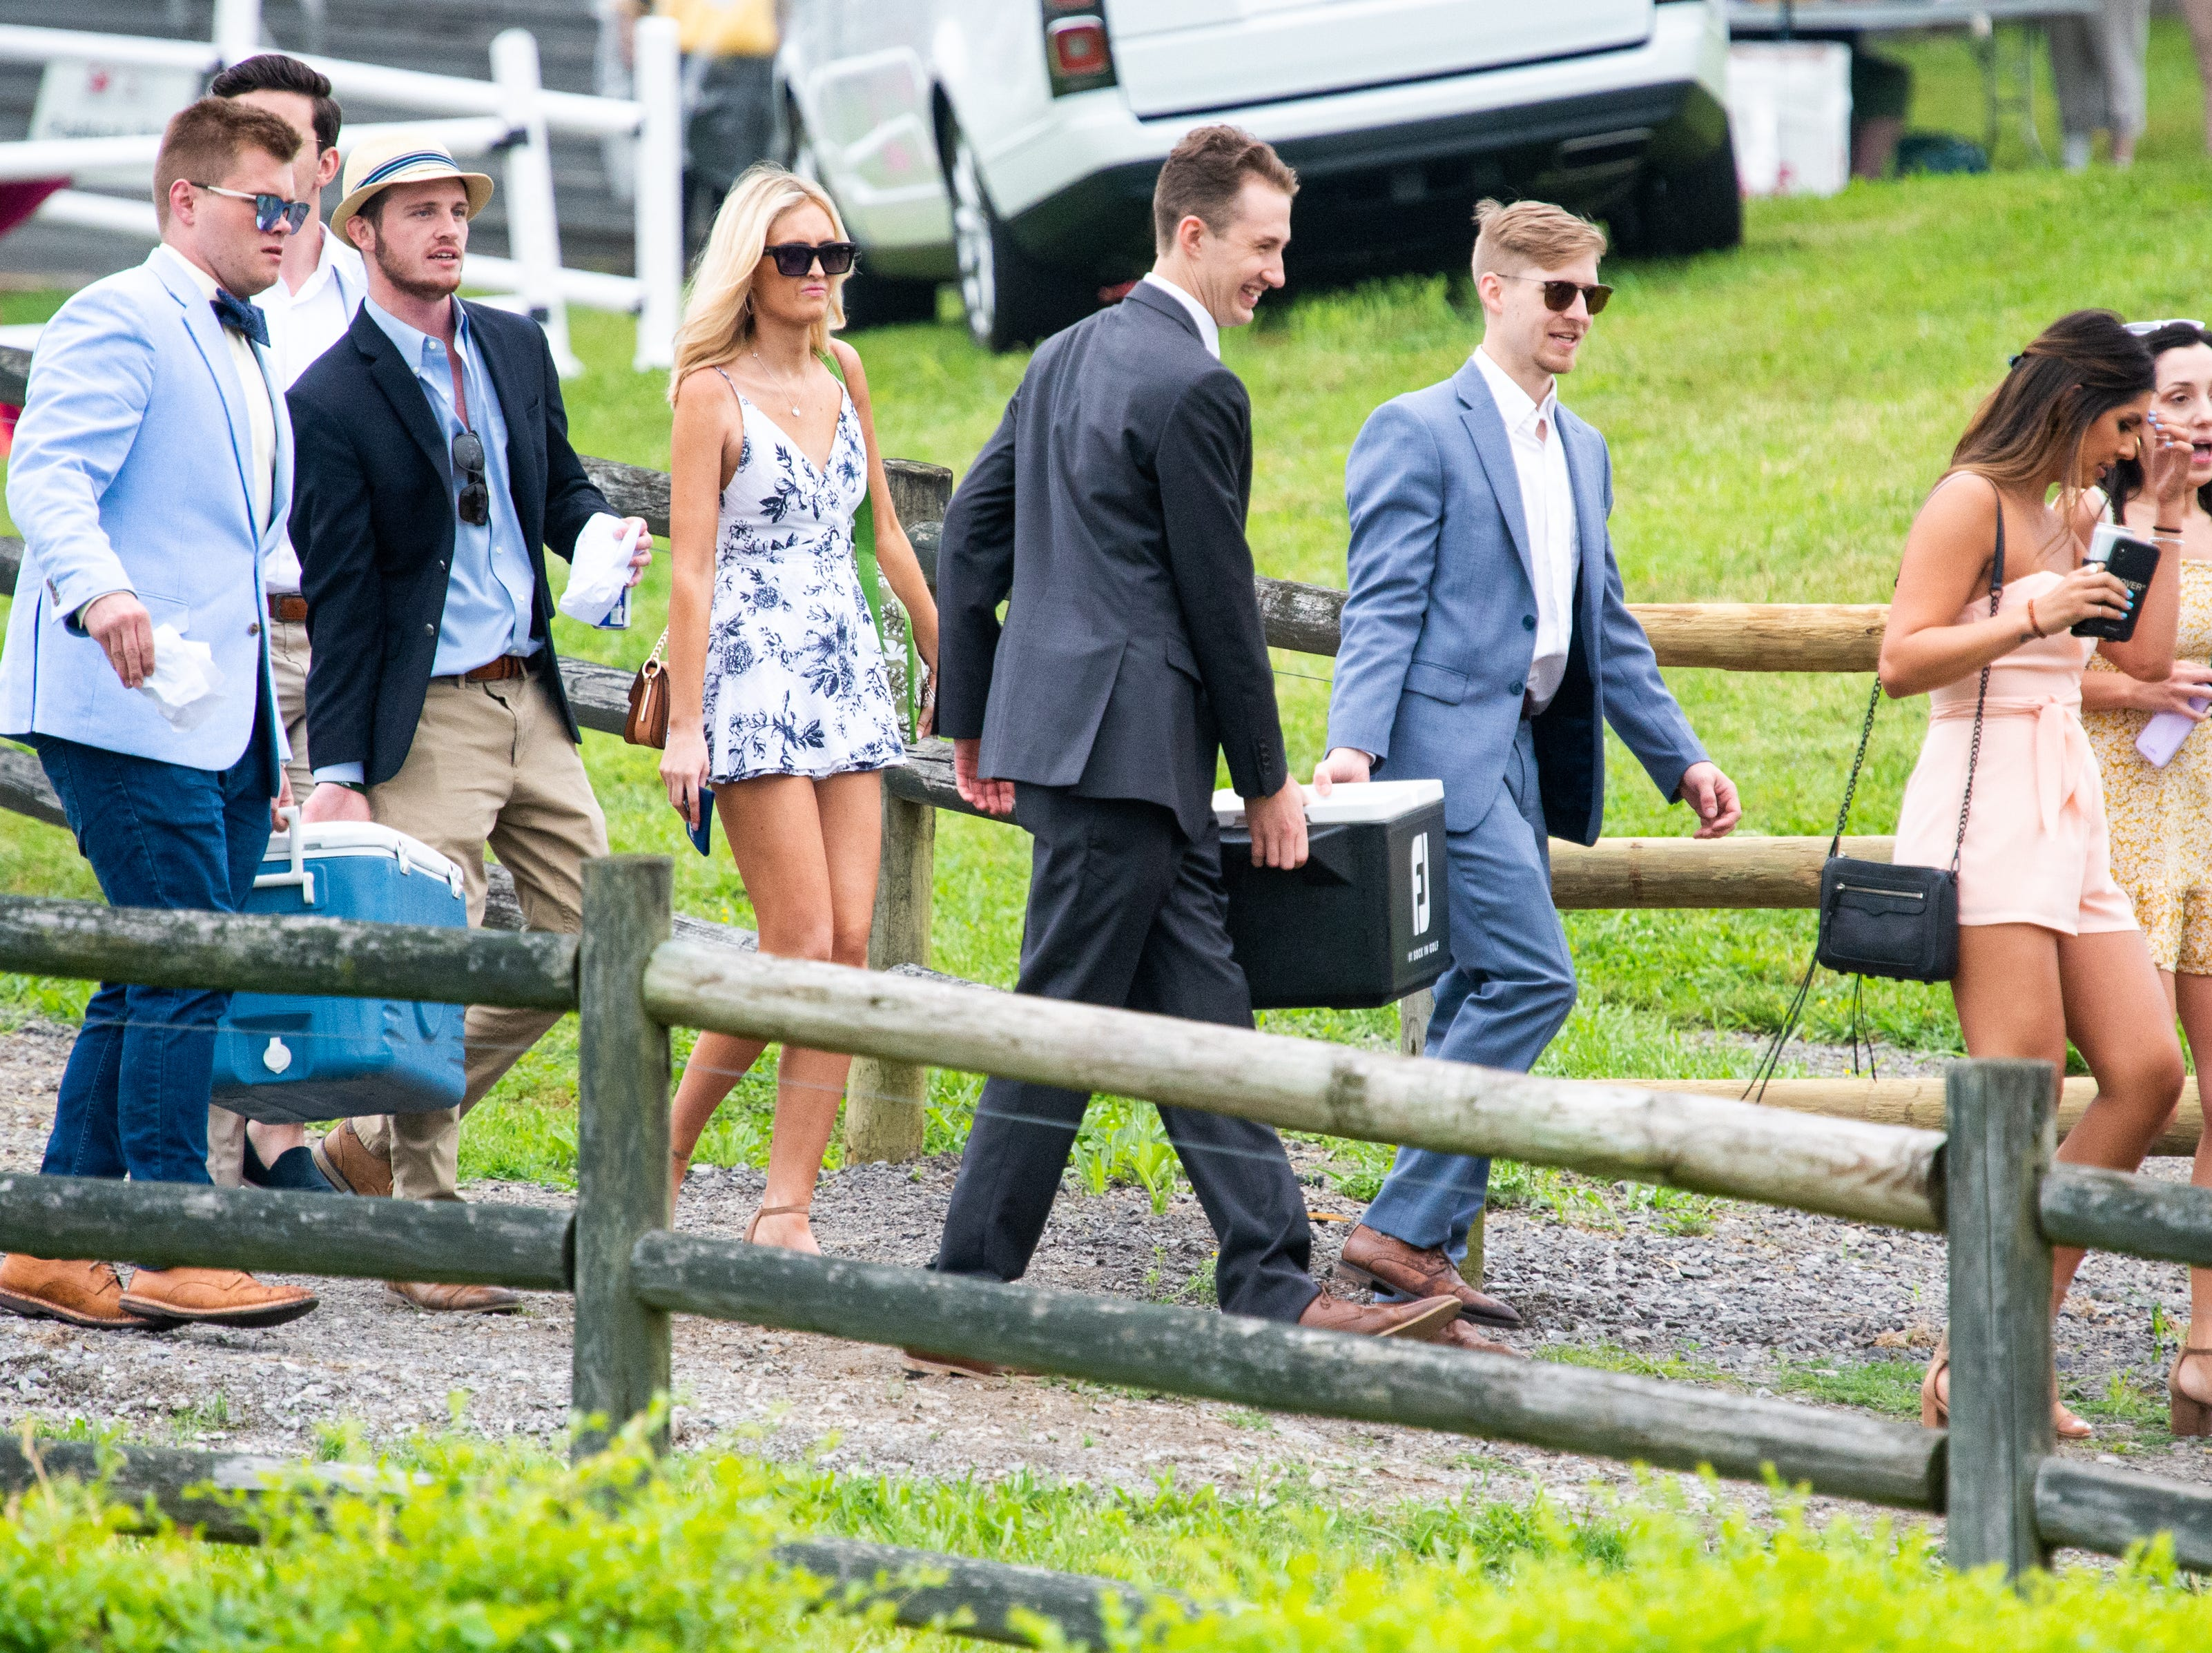 Fans arrive to the Iroquois Steeplechase at Percy Warner Park Saturday, May 11, 2019, in Nashville, Tenn.